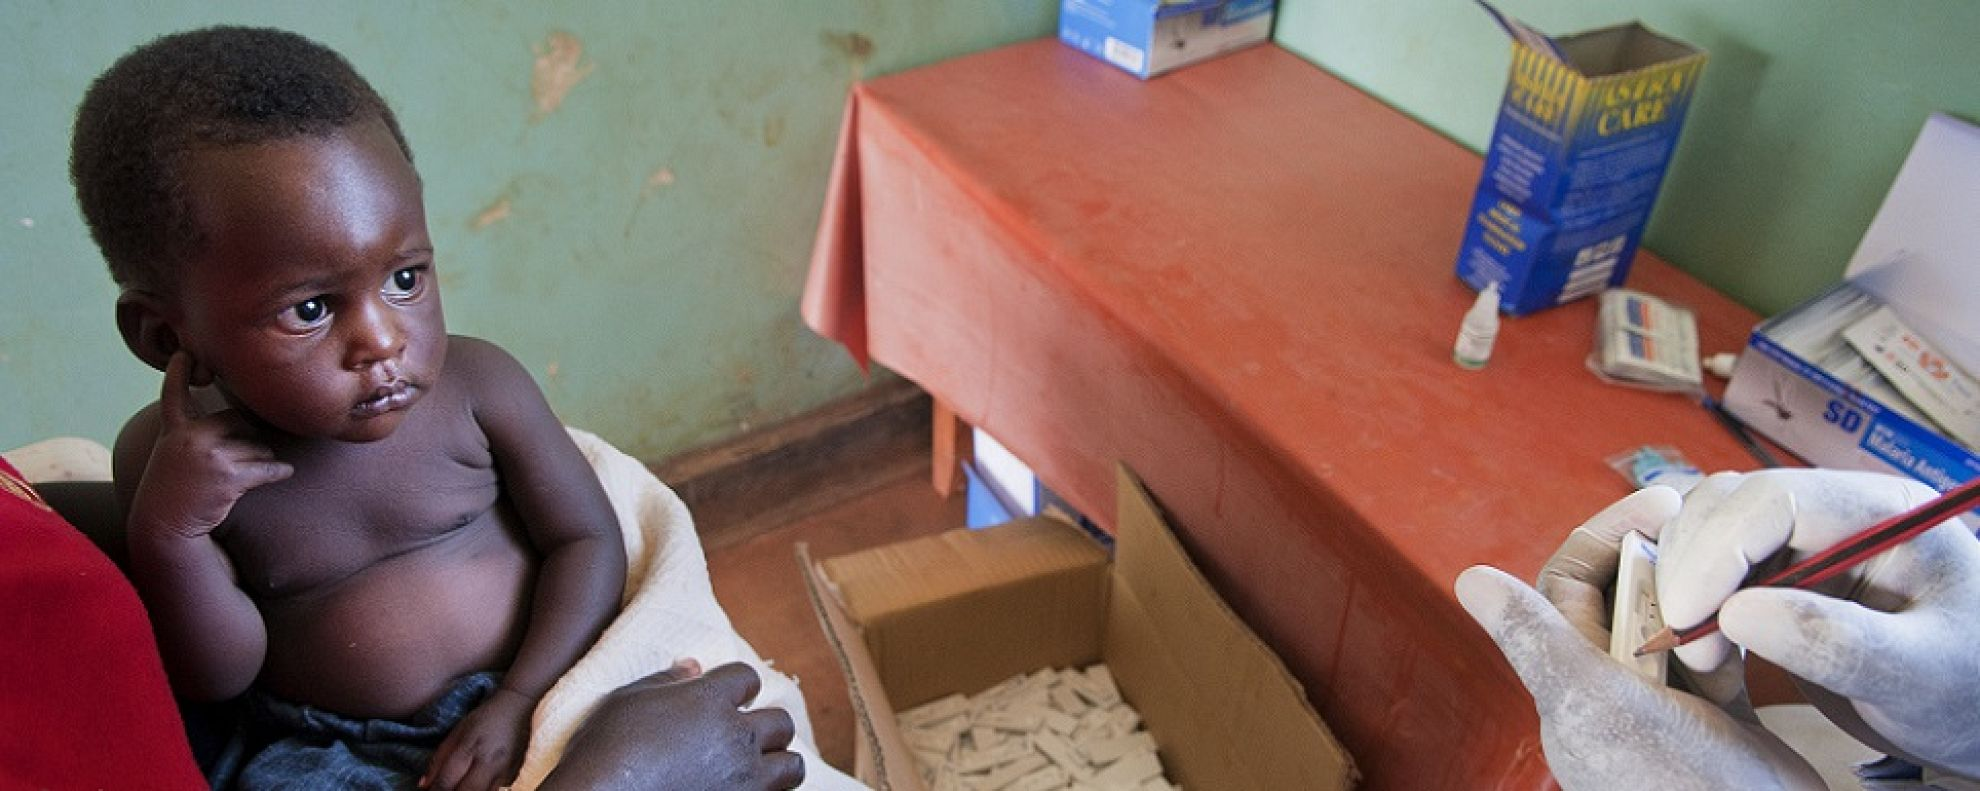 Latest News Advocating for increased iccm coverage in uganda